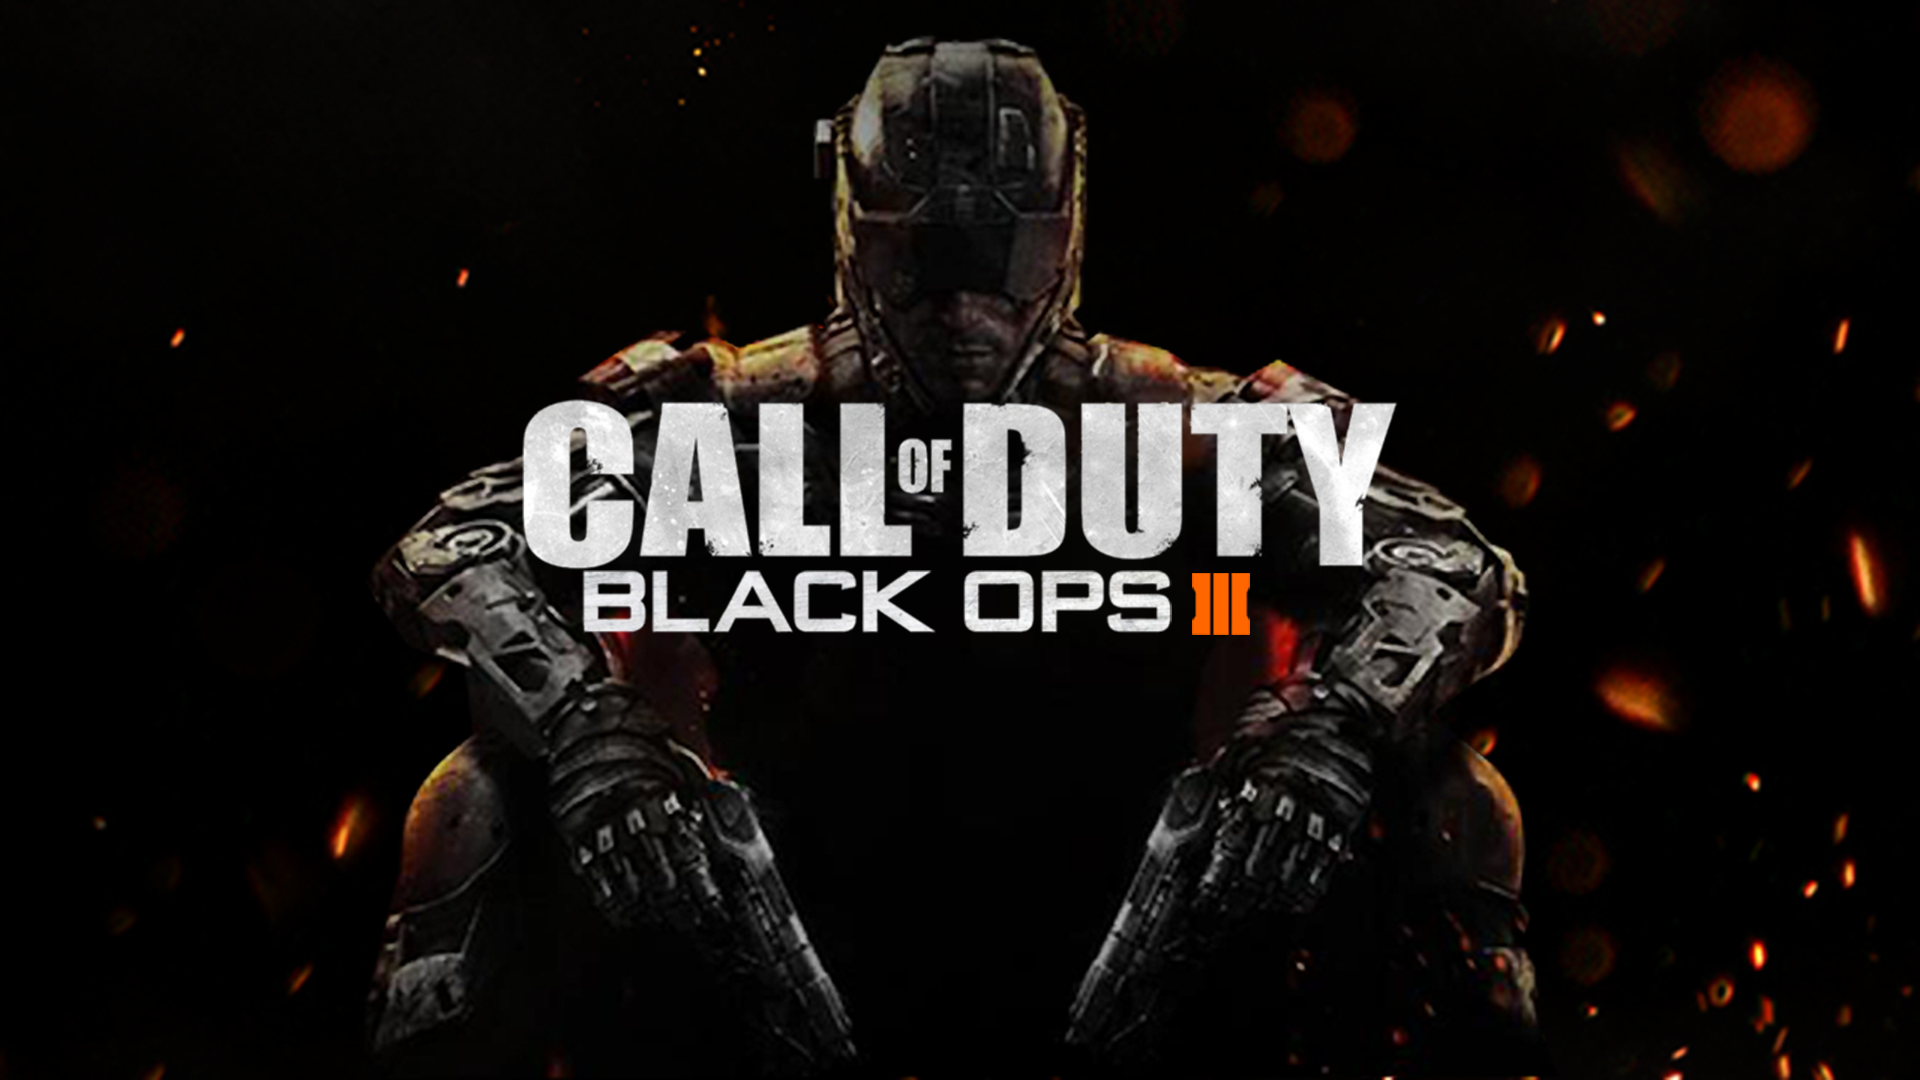 CALL OF DUTY Black Ops 3 – La bande annonce en Multiplayer